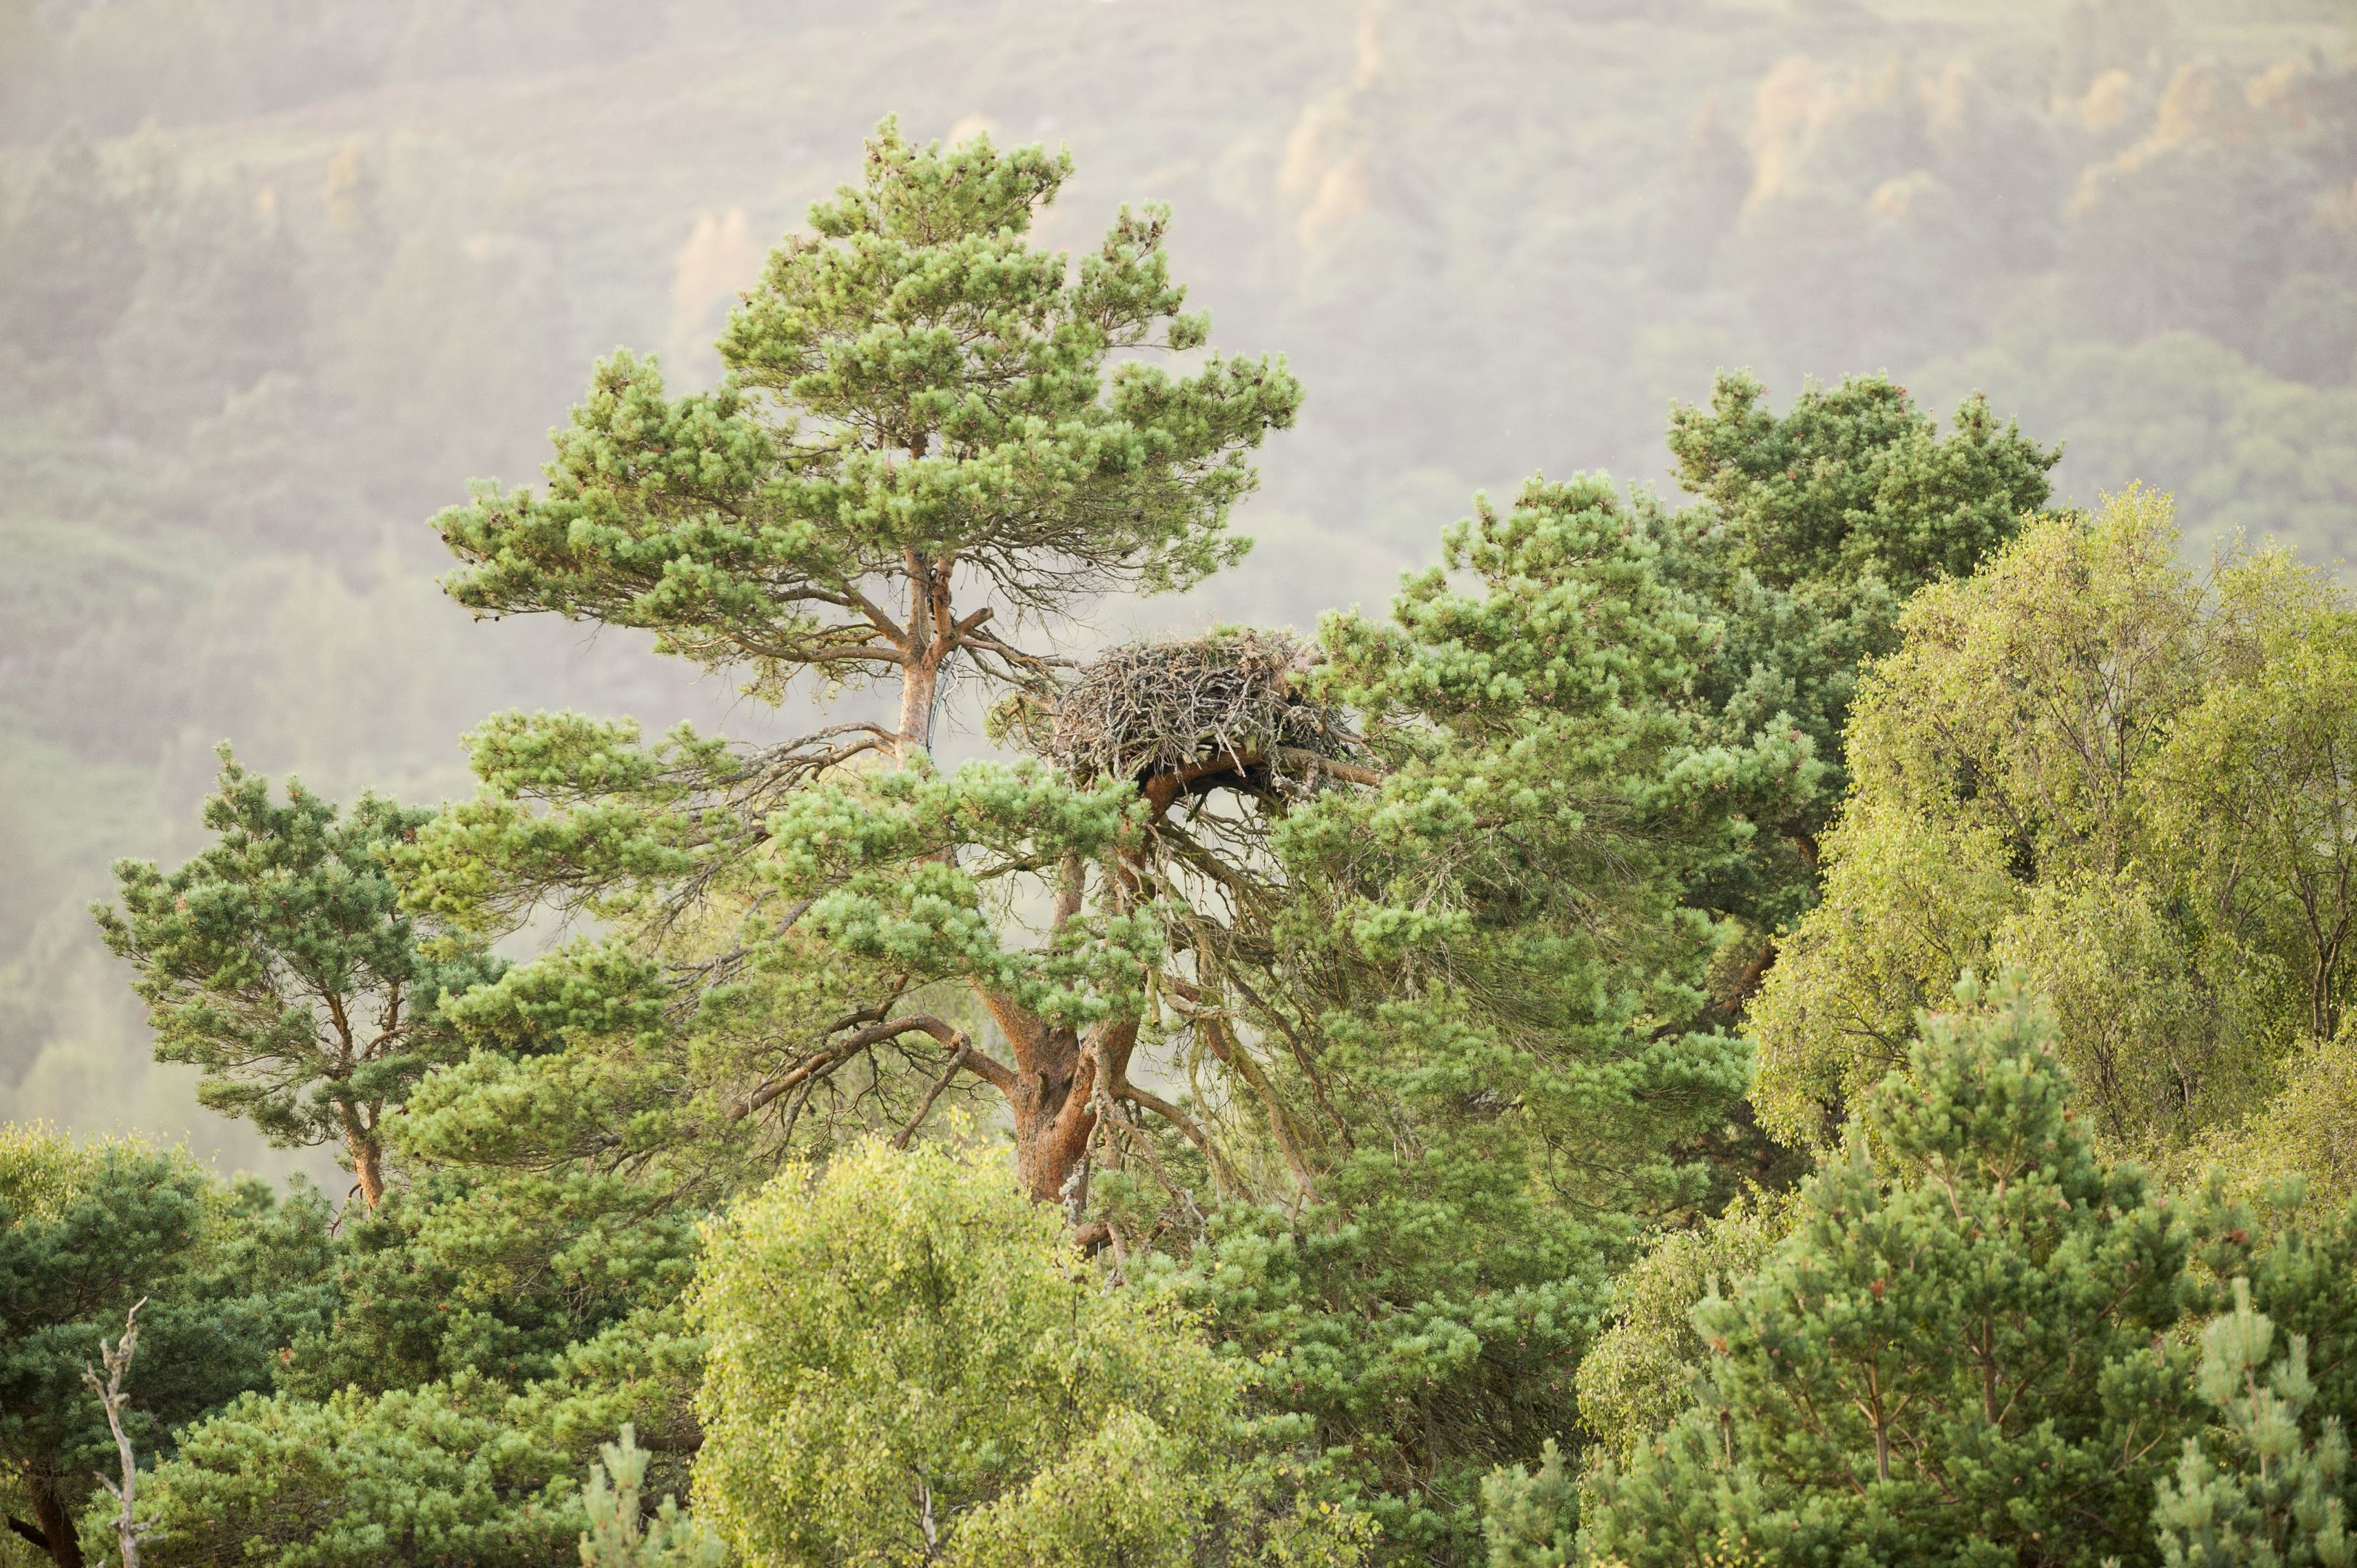 Lady's Tree has been home to a female osprey for nearly 30 years